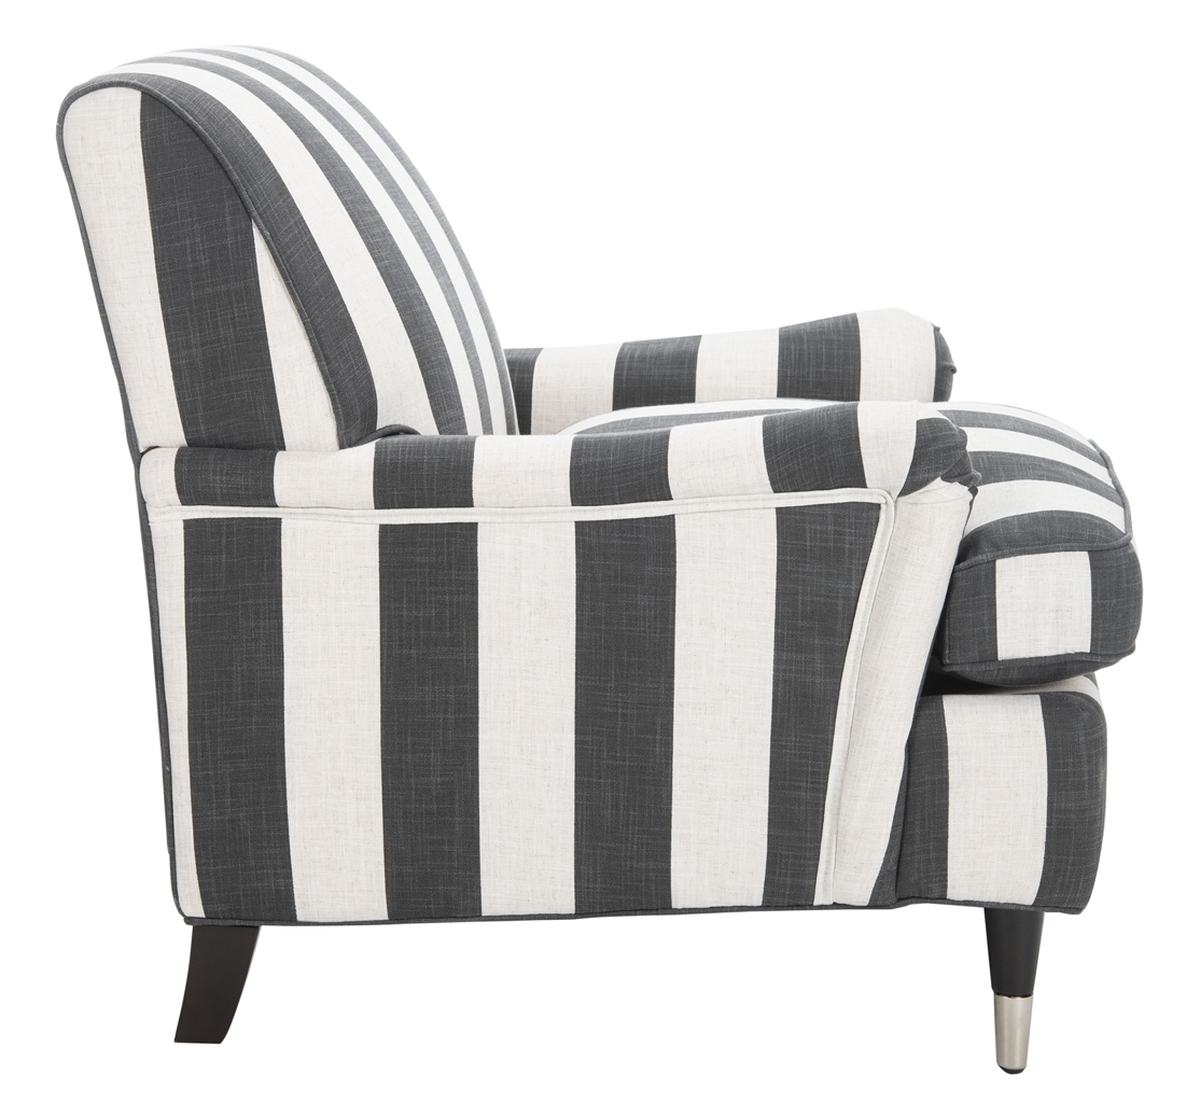 black and white striped chairs nj chair rentals armchair accent safavieh